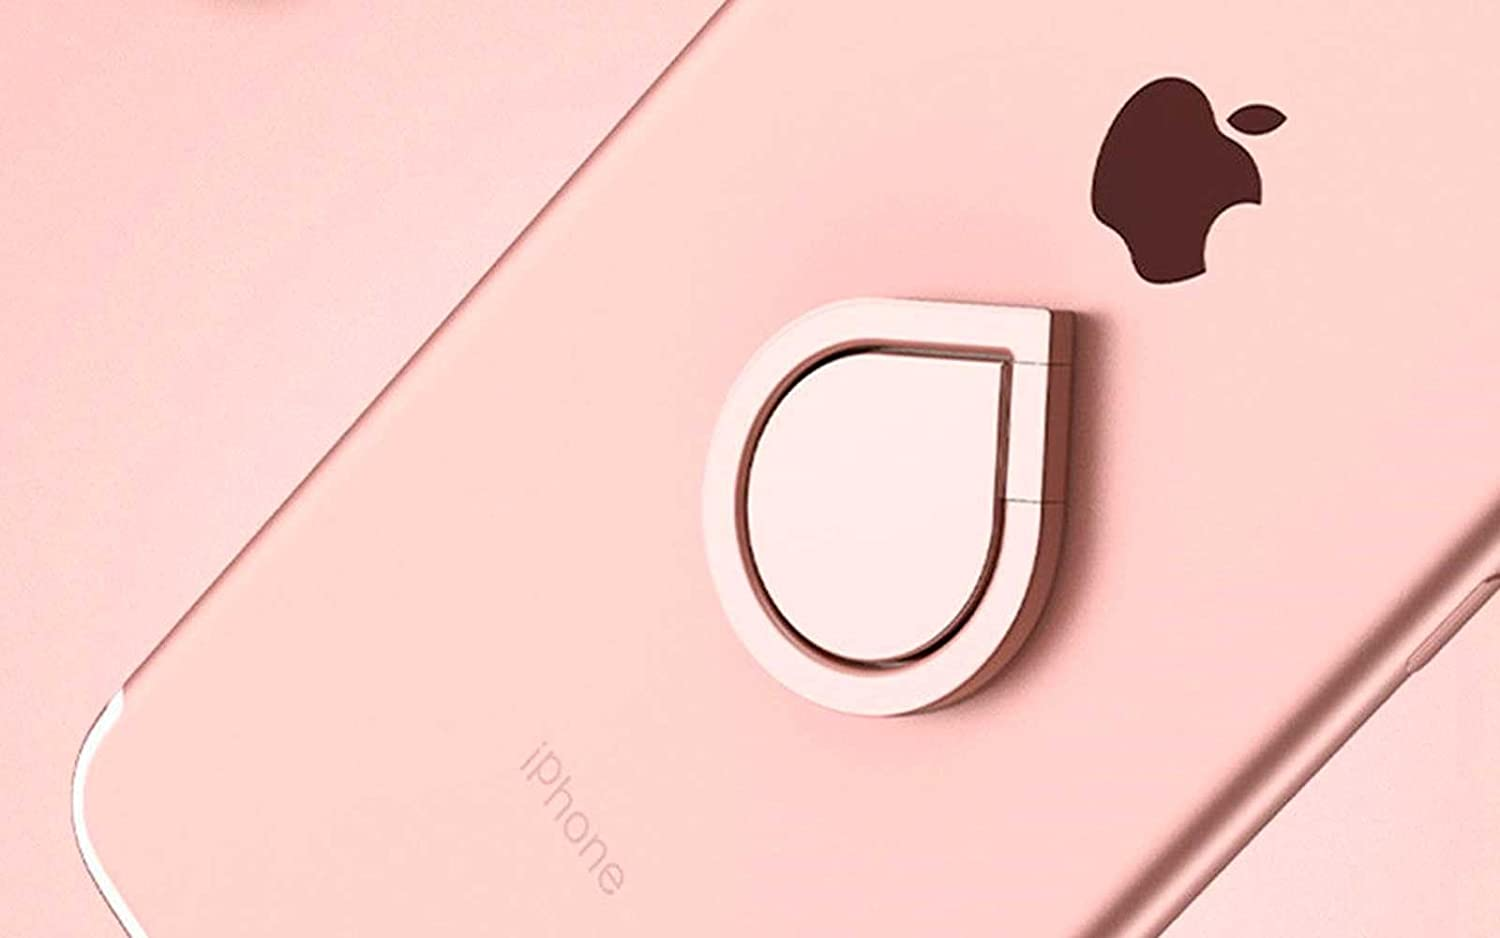 International Wireless Rose Gold 360/°Rotating Metal Finger Ring Stand Holder Stick Mount Bracket For Mobile Cell Phone GPS iPhone Samsung MP3 PDA MP4 PSP